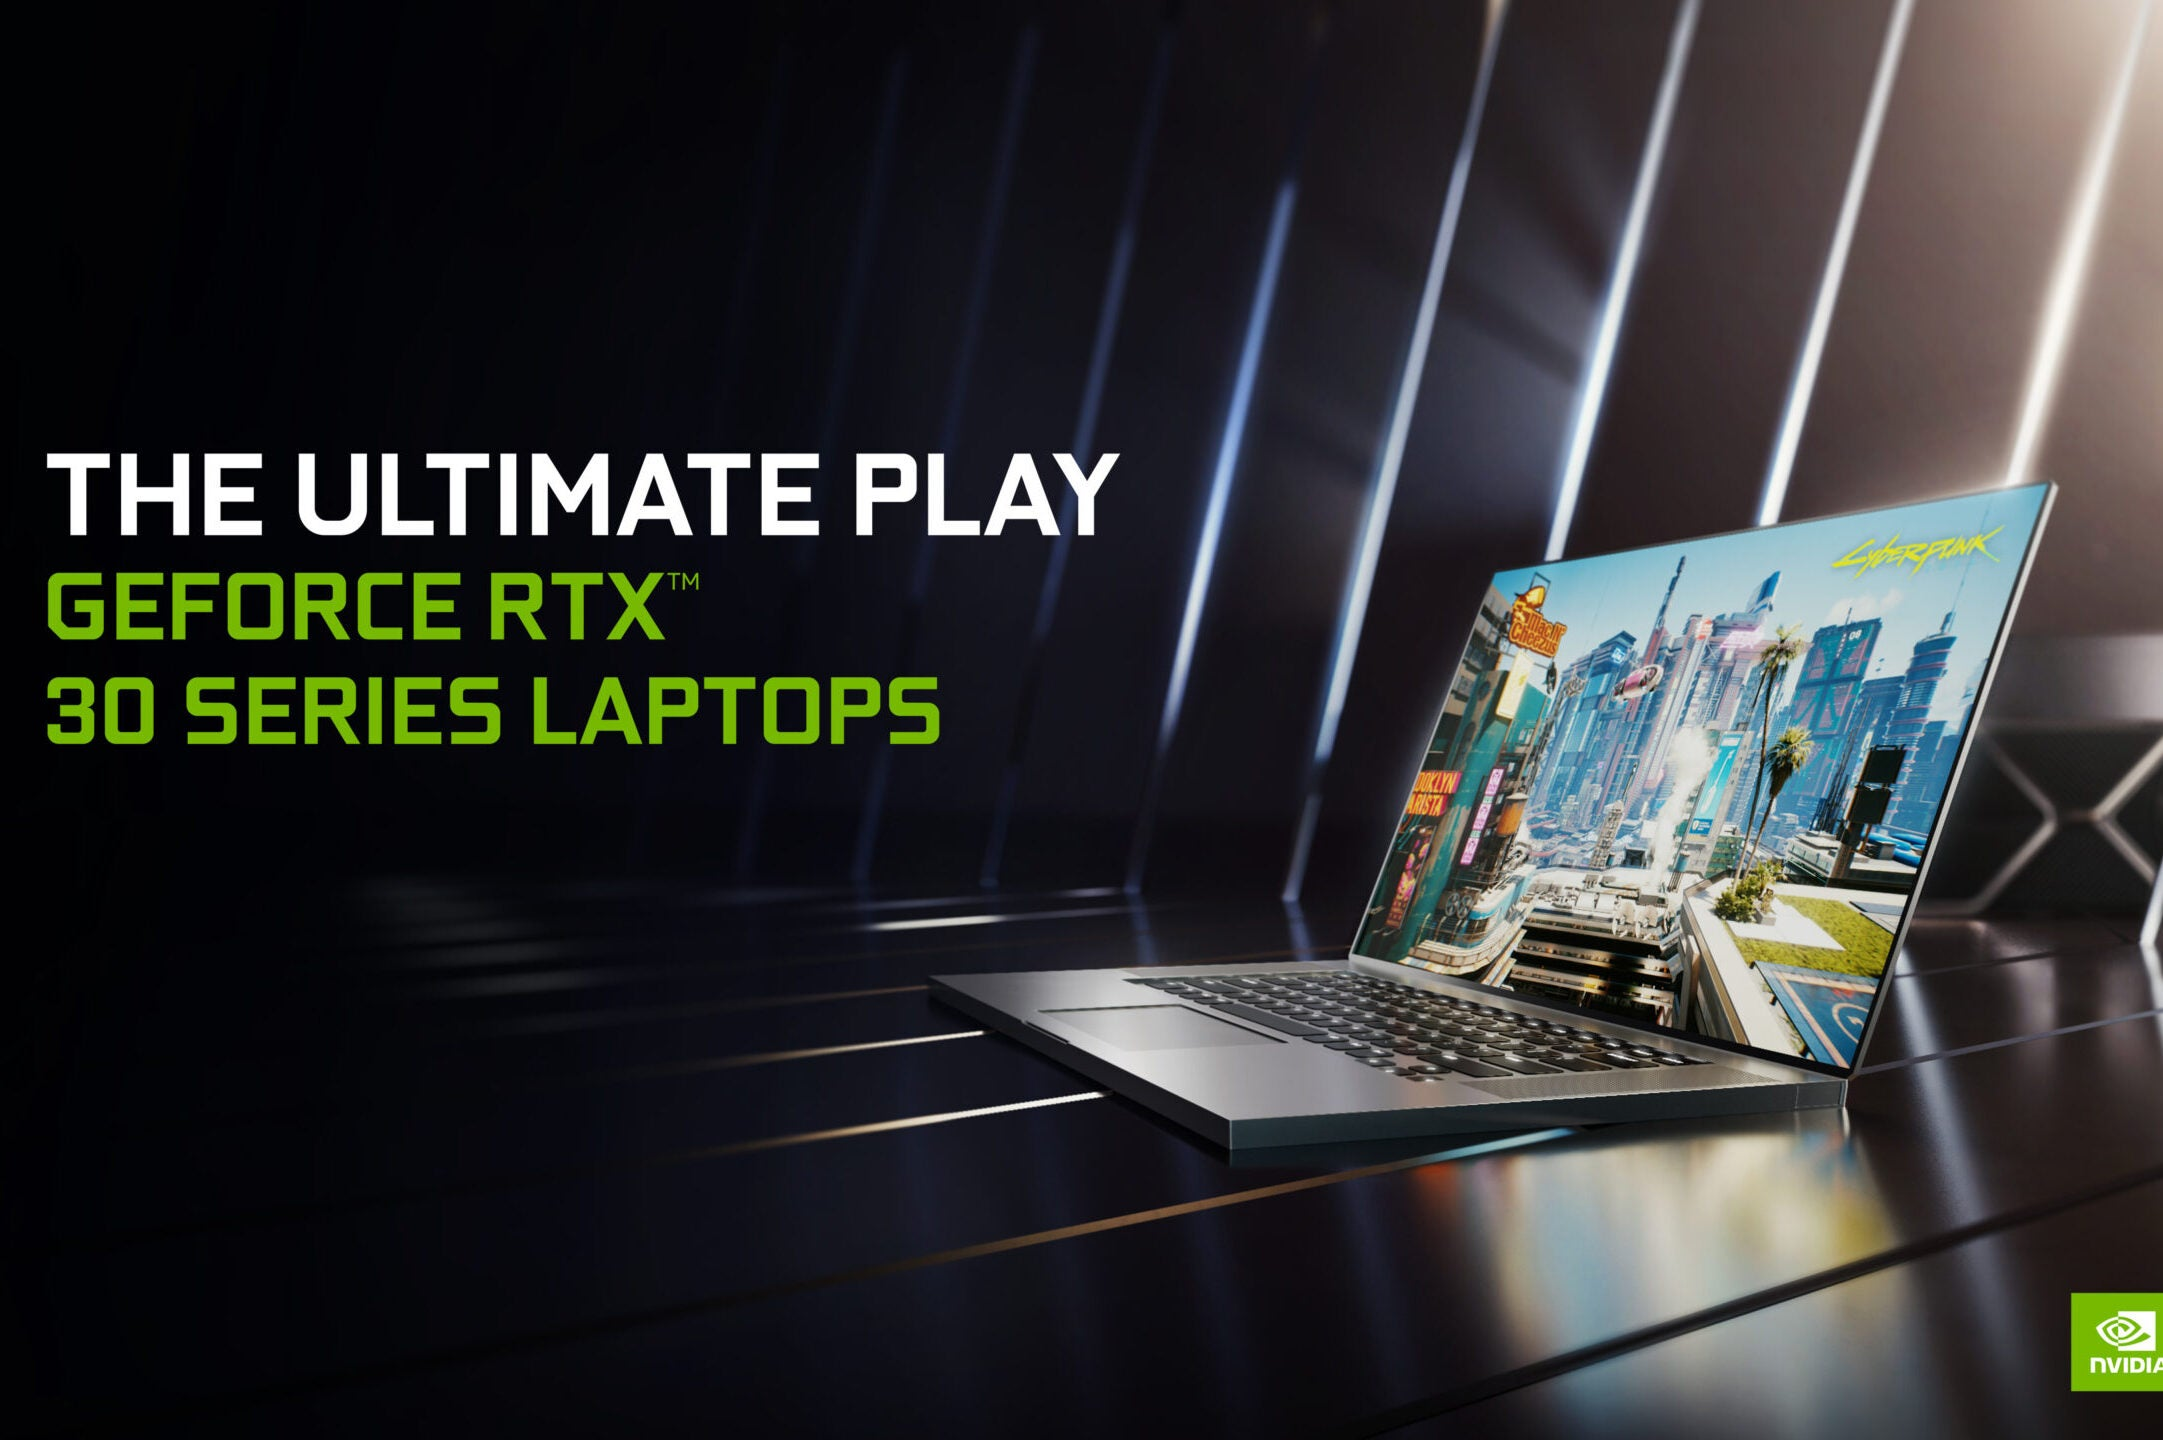 Nvidia's RTX 30-Series laptop GPUs will be more powerful than the PS5